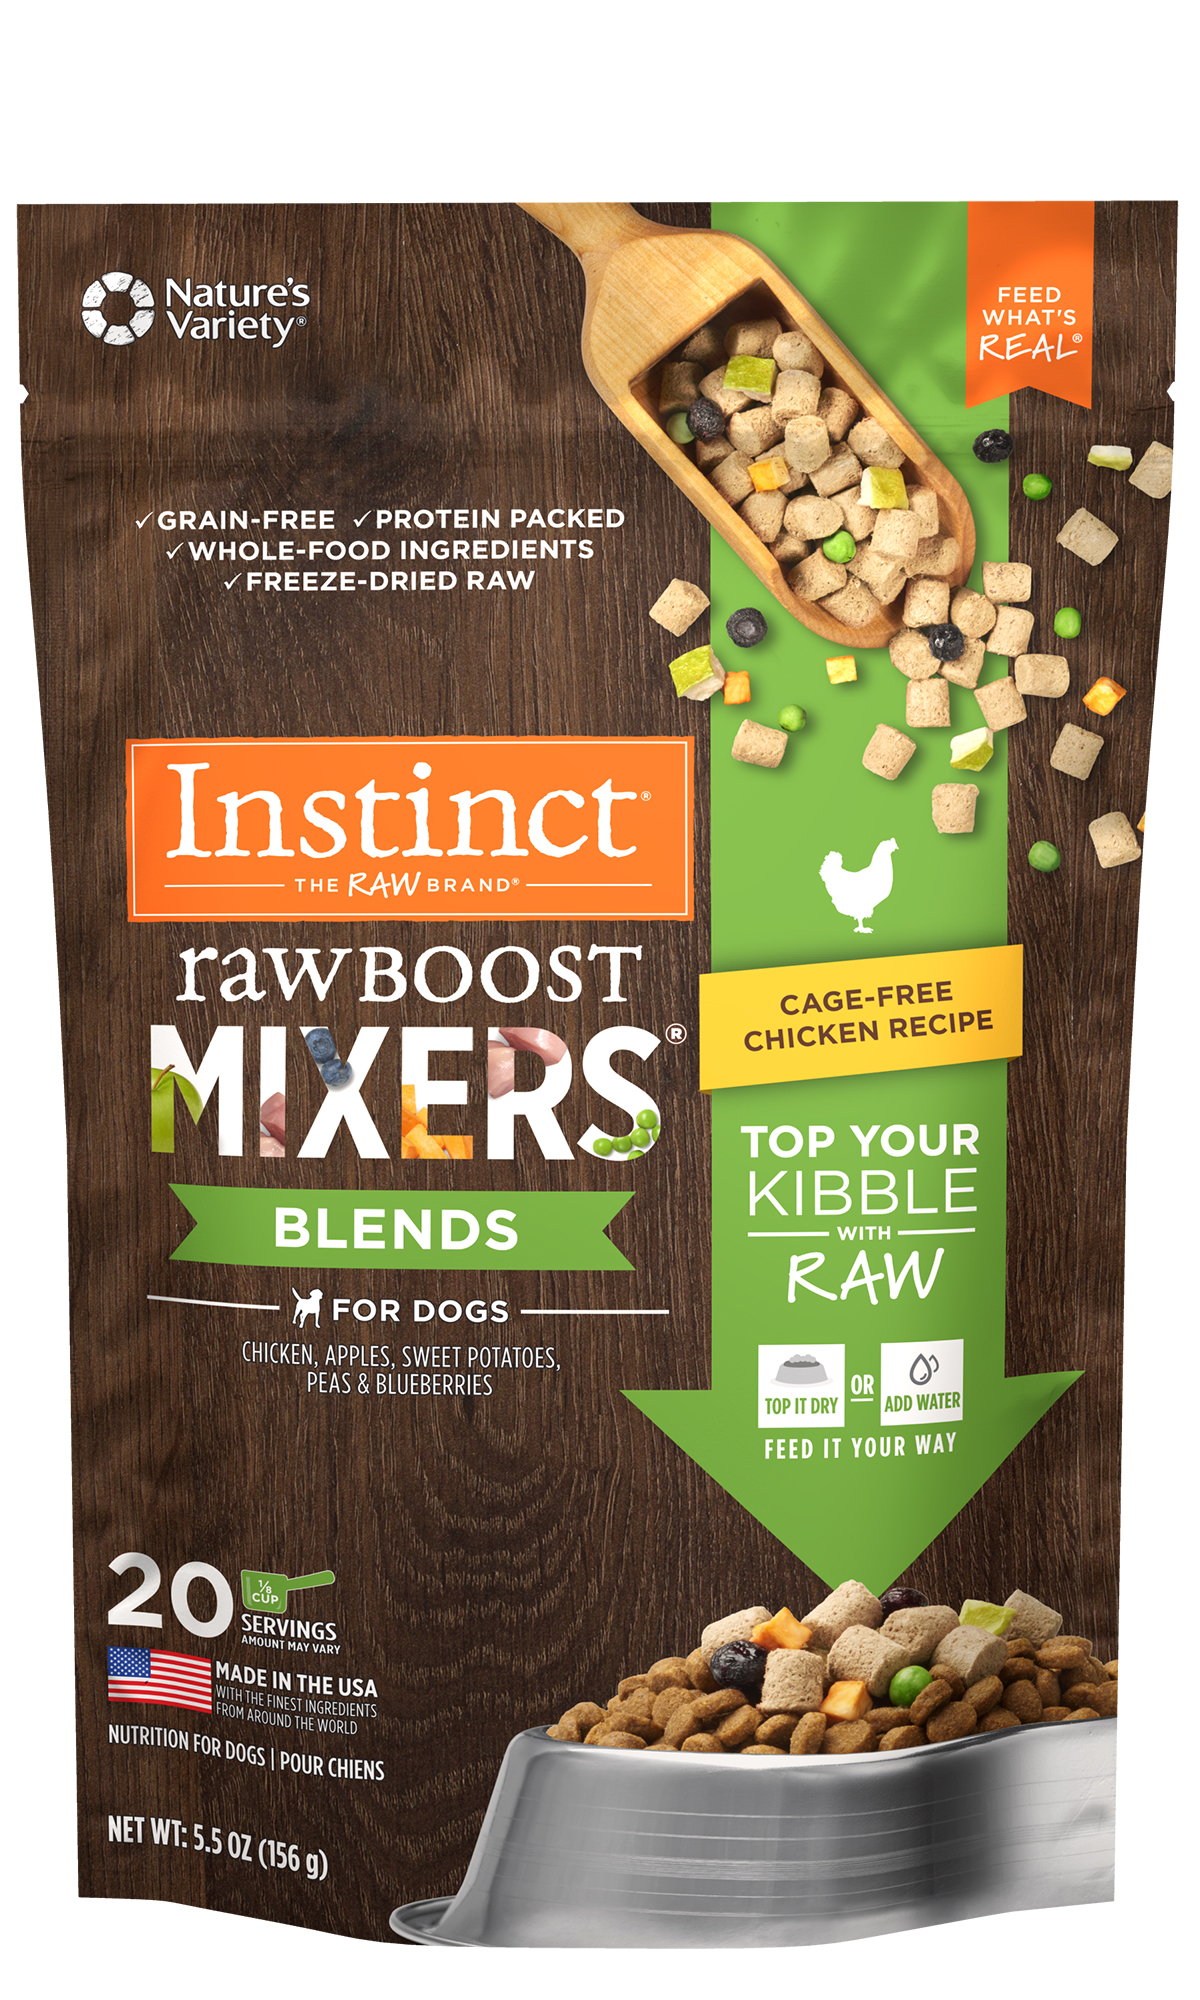 Instinct by Nature's Variety Raw Boost Mixers Cage-Free Chicken Recipe, 5.5-oz